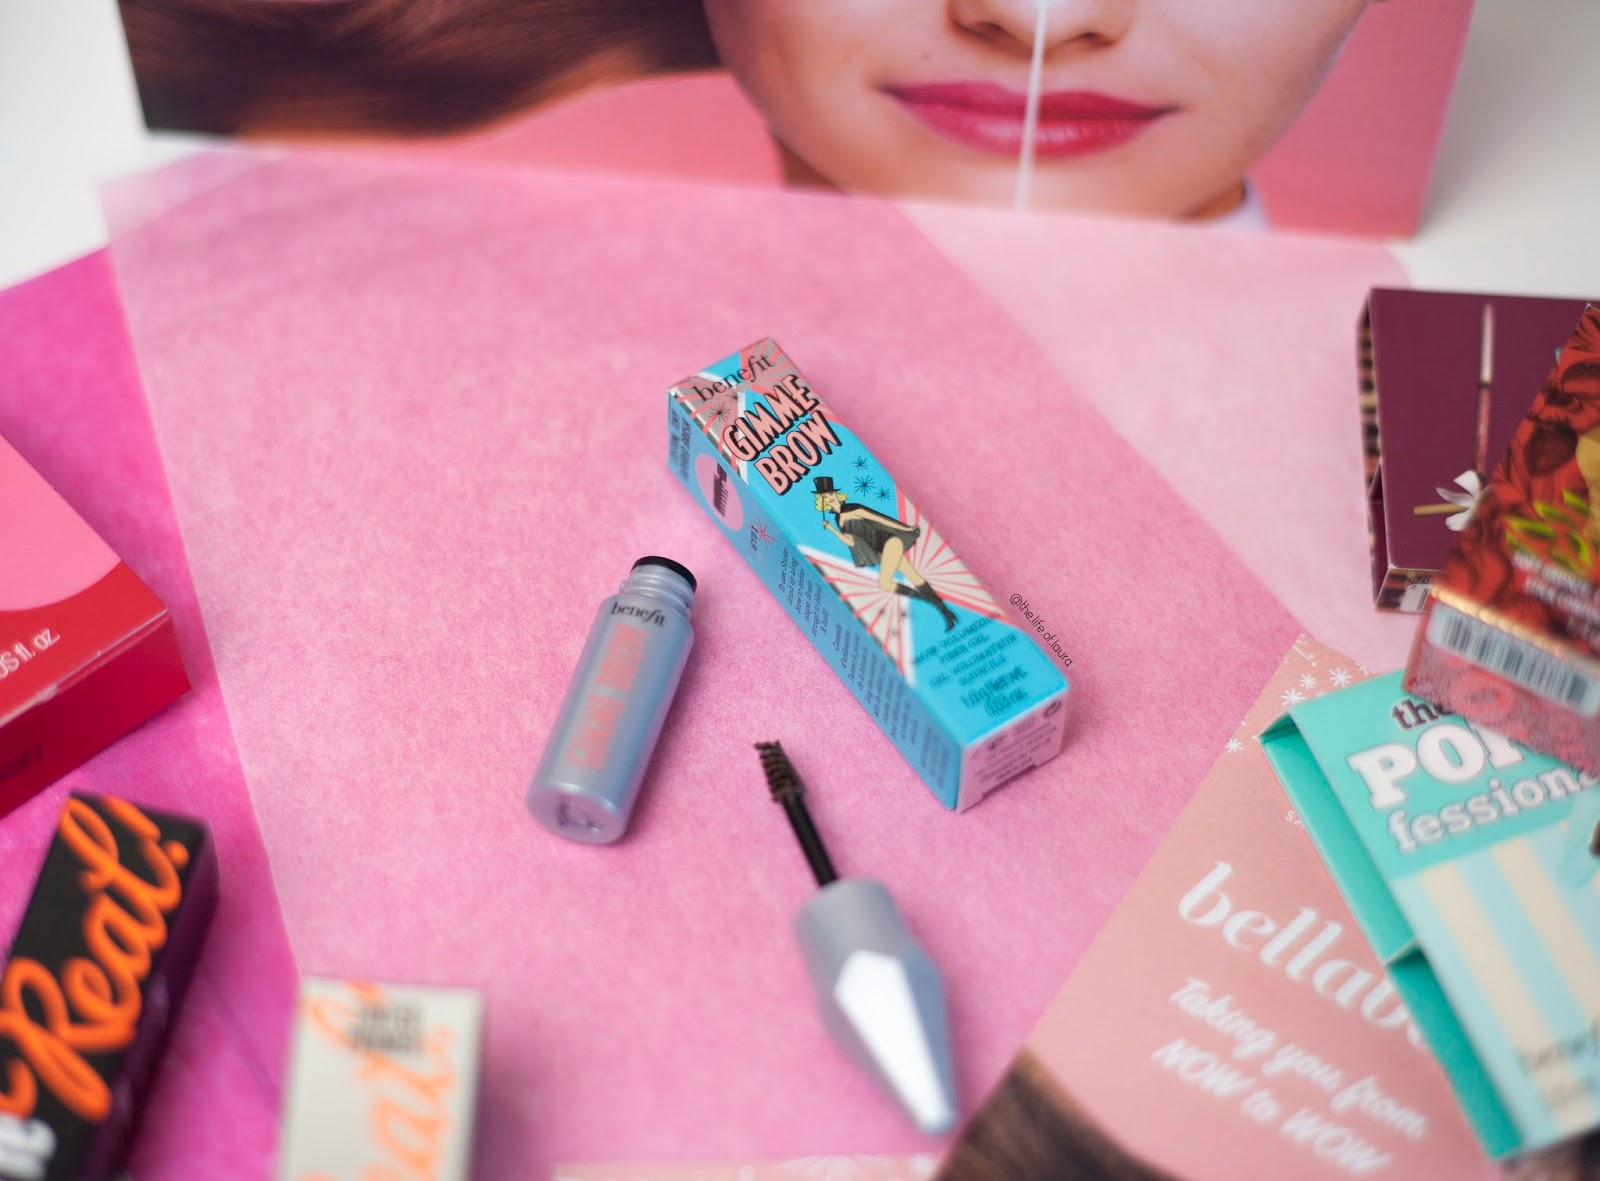 Bellabox x Benefit Gimme Brow